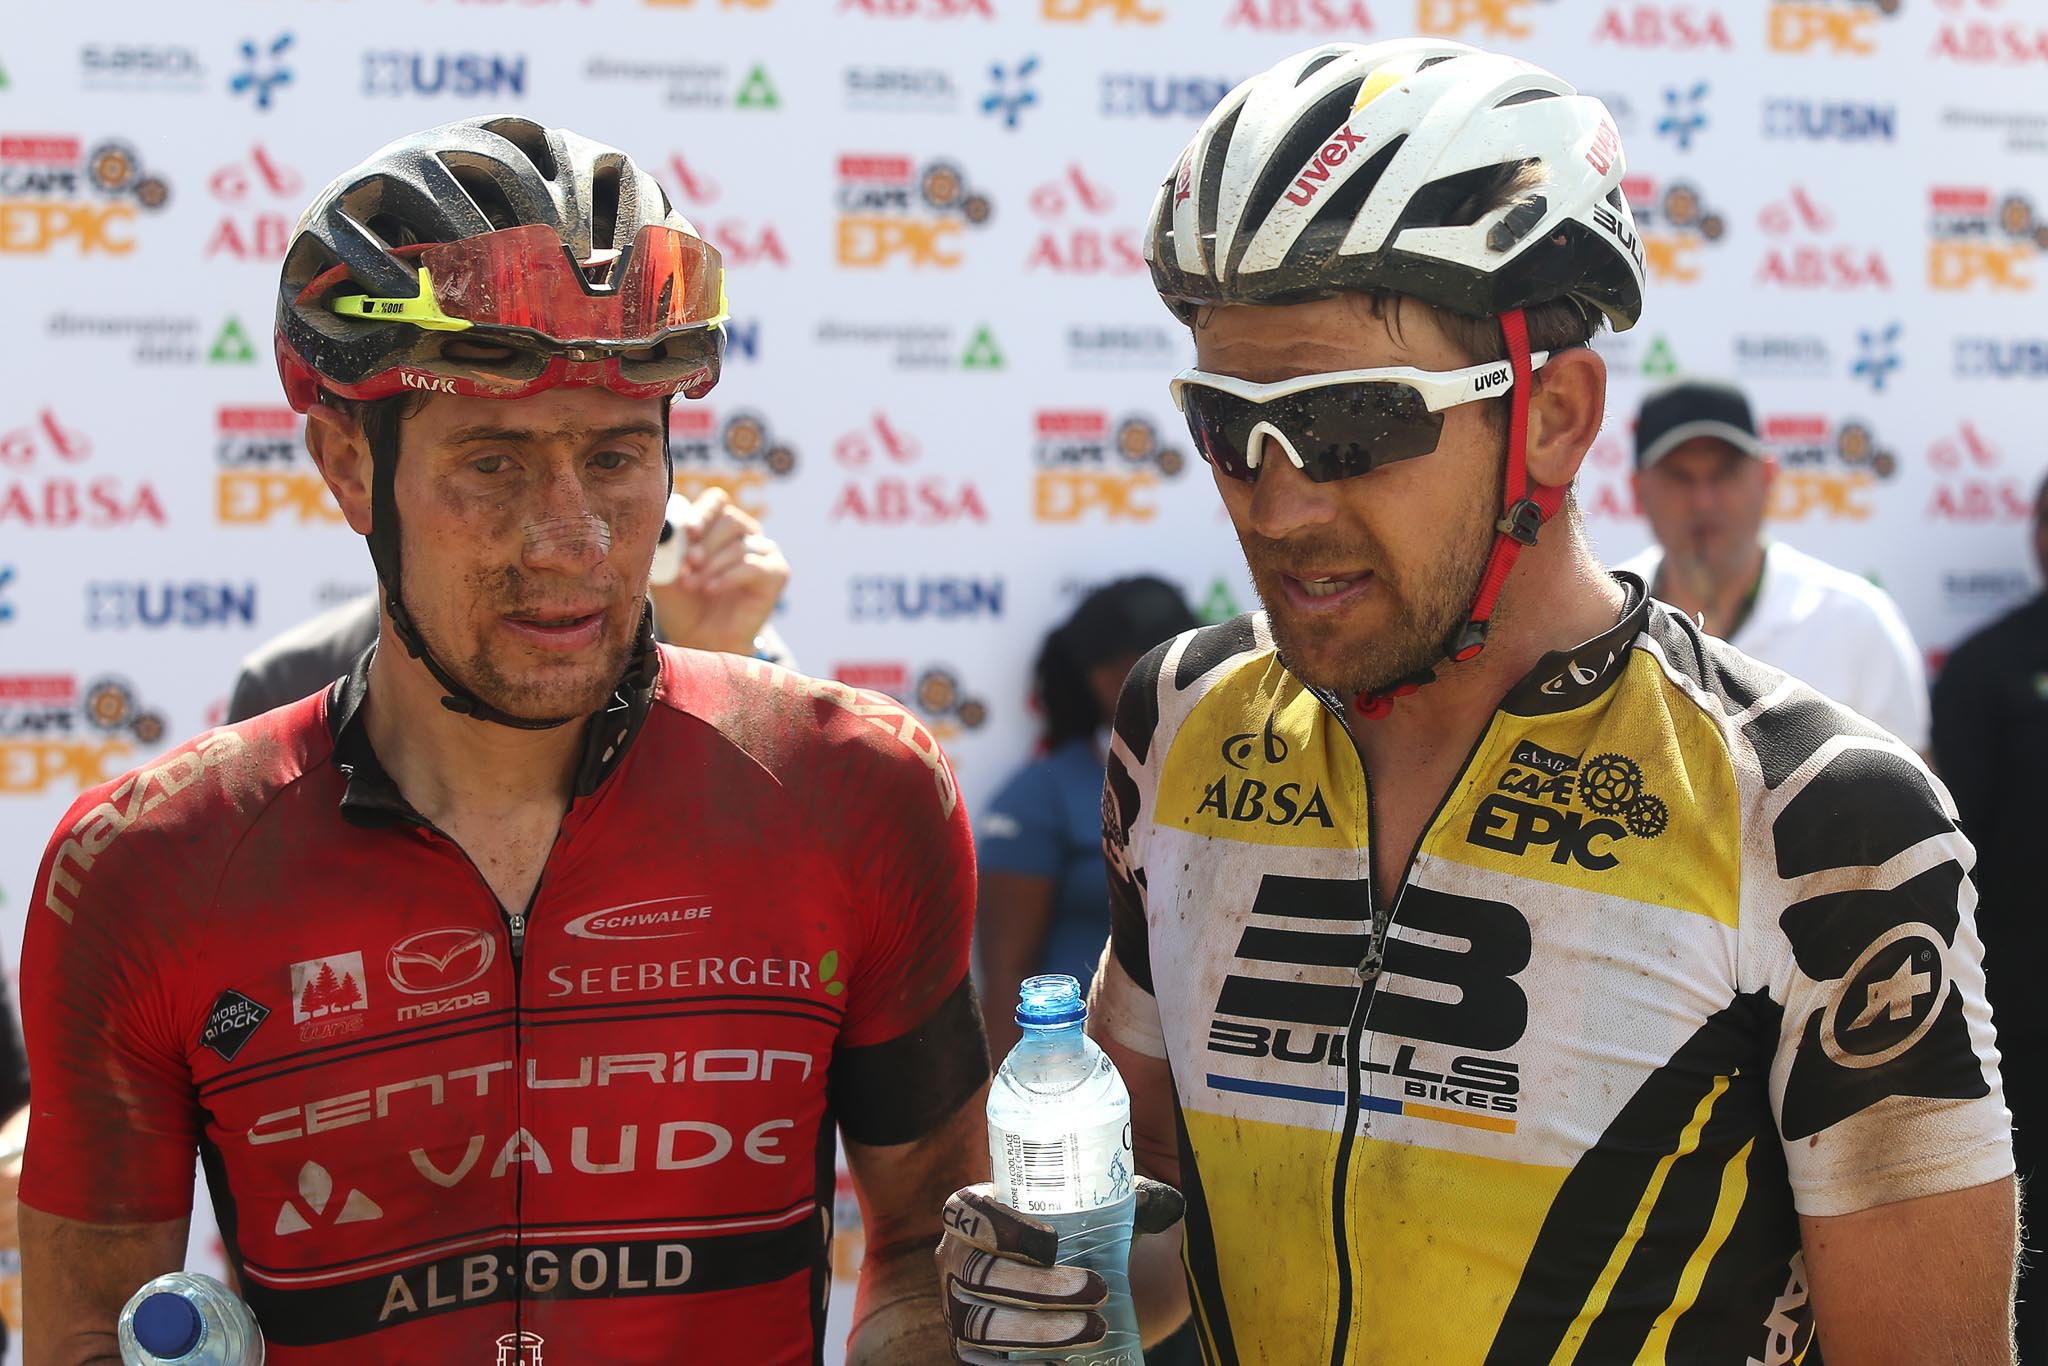 Matthias Pfommer of Centurion Vaude by Meerendal 2 and Karl Platt of the Bulls chat after the stage during stage 5 of the 2016 Absa Cape Epic Mountain Bike stage race held from the Cape Peninsula University of Technology in Wellington to Boschendal in Stellenbosch, South Africa on the 18th March 2016 Photo by Shaun Roy/Cape Epic/SPORTZPICS PLEASE ENSURE THE APPROPRIATE CREDIT IS GIVEN TO THE PHOTOGRAPHER AND SPORTZPICS ALONG WITH THE ABSA CAPE EPIC {ace2016}